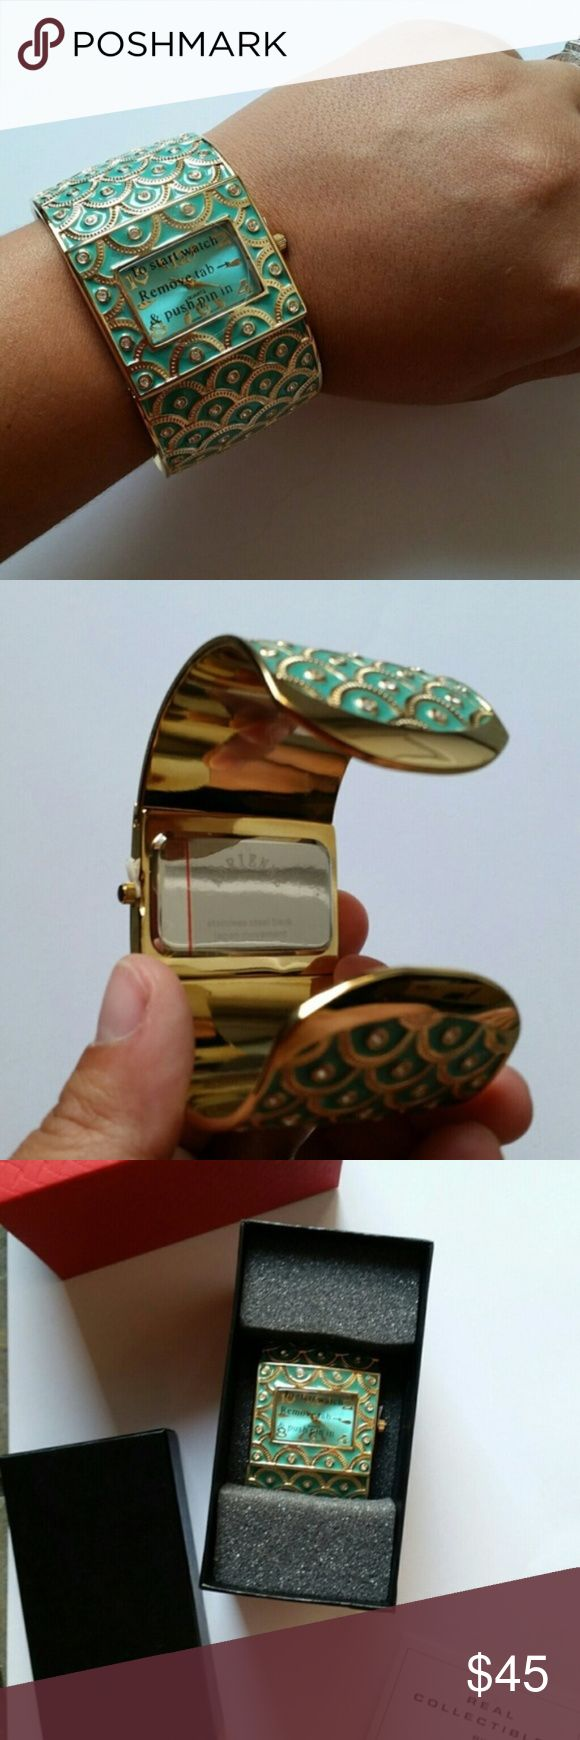 """NIB Real Collectables by Adrienne Cuff Watch Russian Easter Egg Inspired Jeweled Cuff Watch. Brand new in box.  Purchased a few years ago and just not my style anymore, forgotten in the back of my closet.  Beautiful green and gold scallops with jewel inlays 1.5"""" wide, because of the cuff will fit many size wrists Don't forget to bundle for a discount or make an offer  All items come from a non-smoking home! Real Collectibles by Adrienne Accessories Watches"""